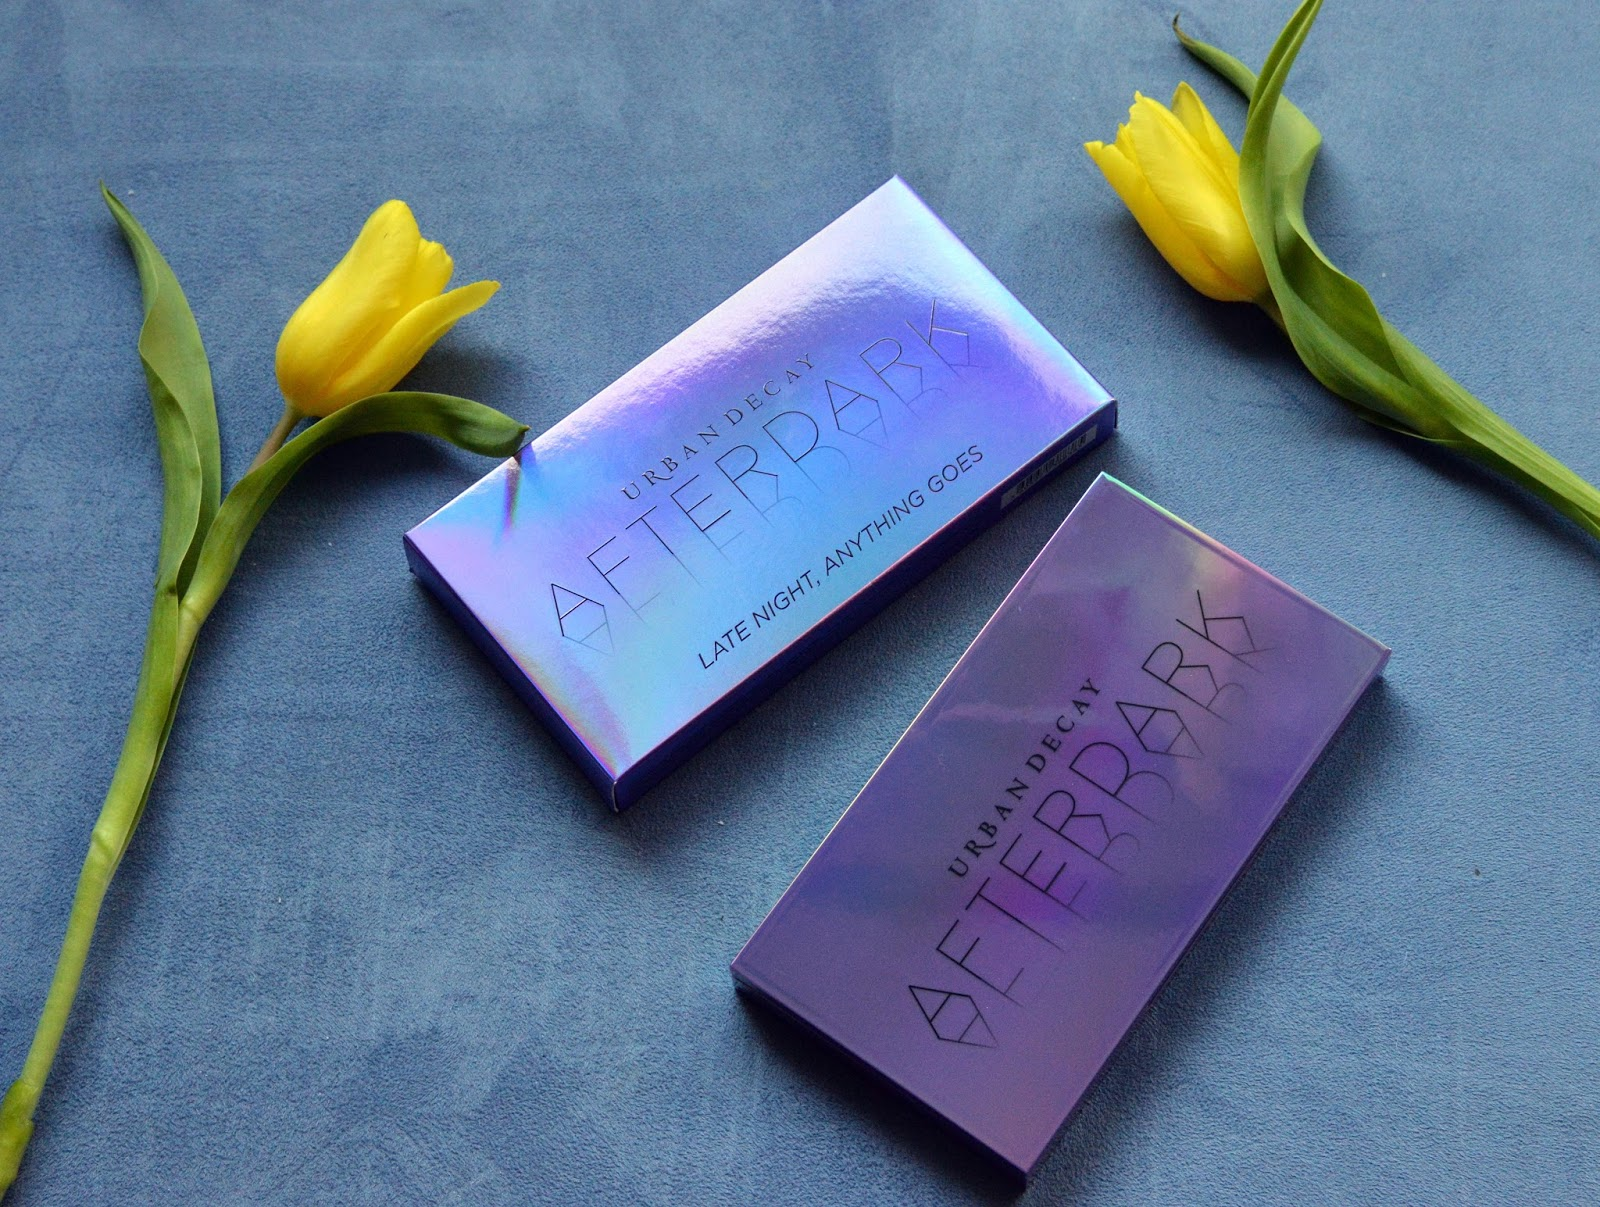 Urban Decay Afterdark Eyeshadow Palette Review